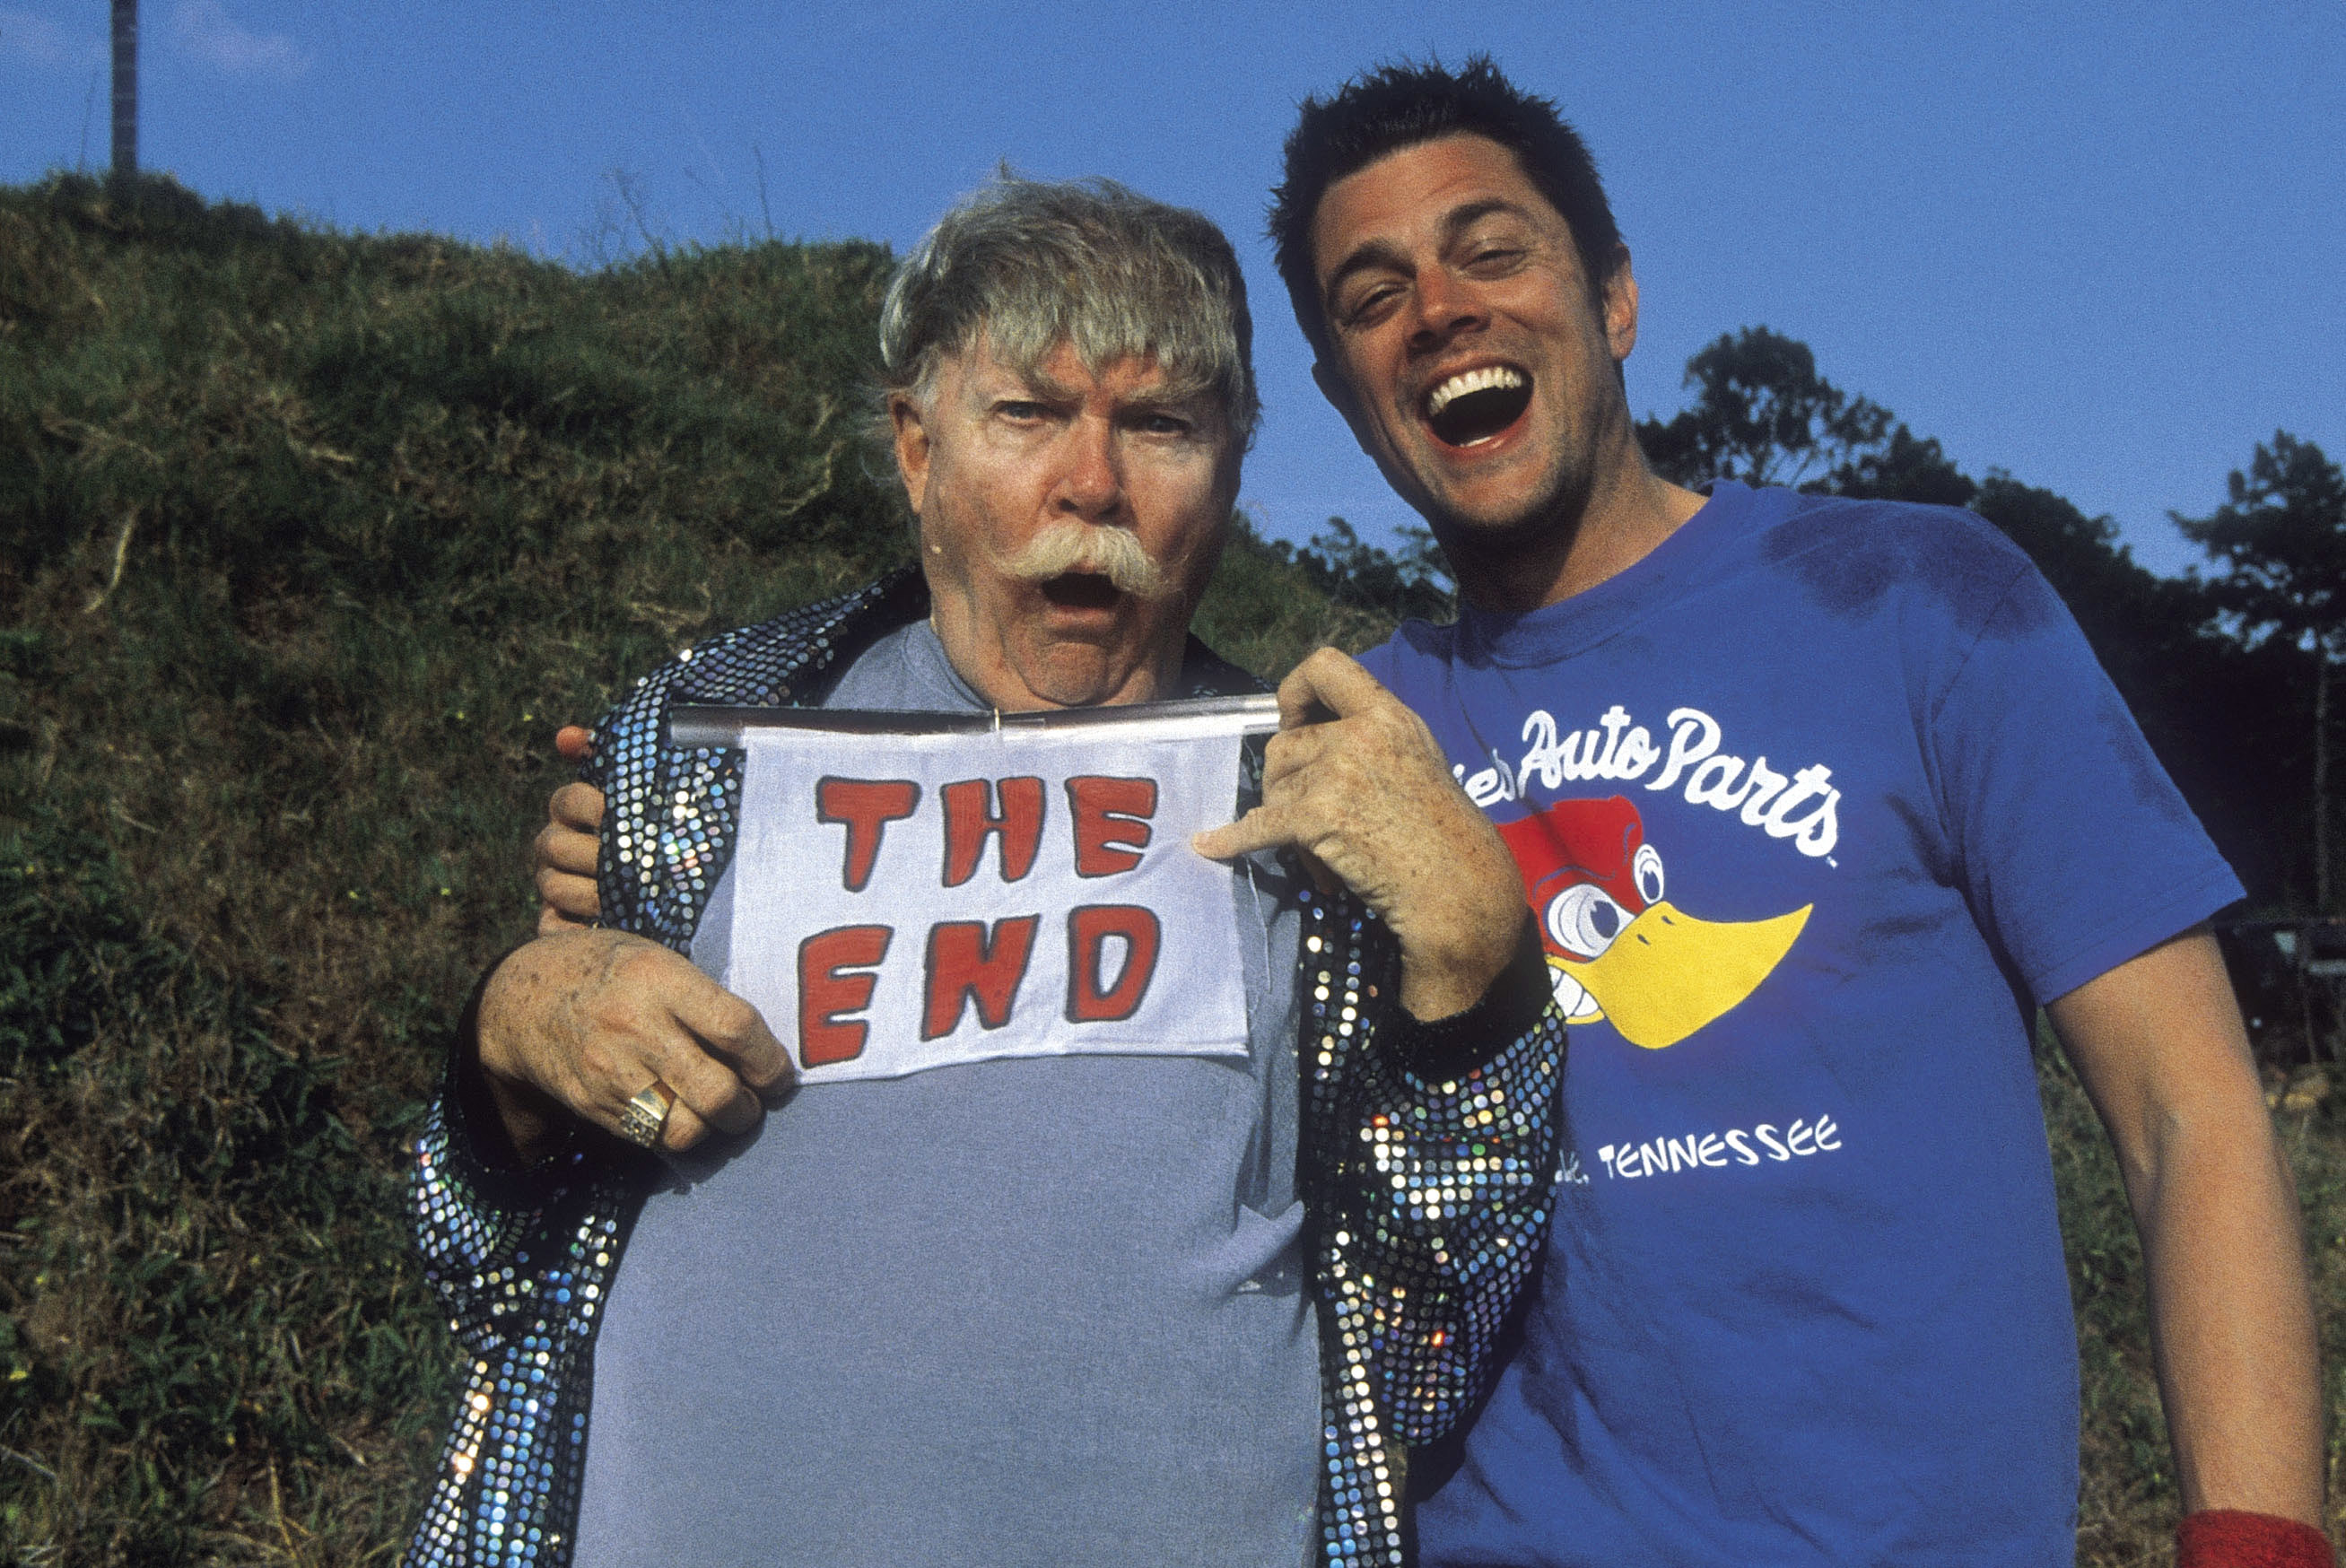 """Johnny Knoxville standing with Rip Taylor, who's holding a sign that says """"The End"""""""